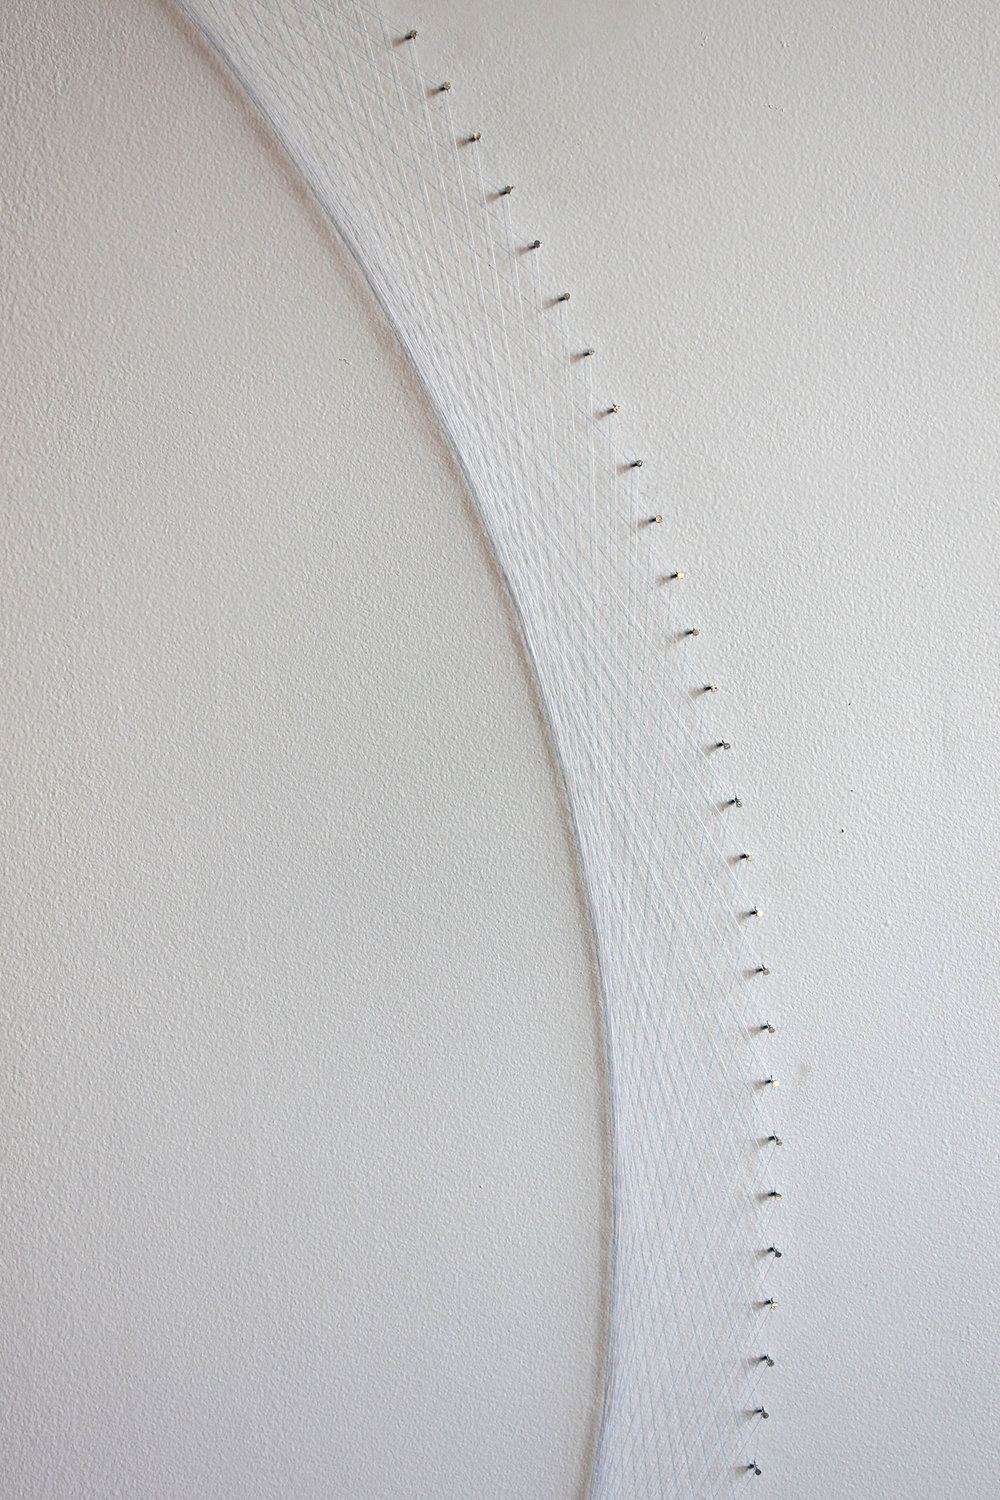 White Hex (detail).jpg